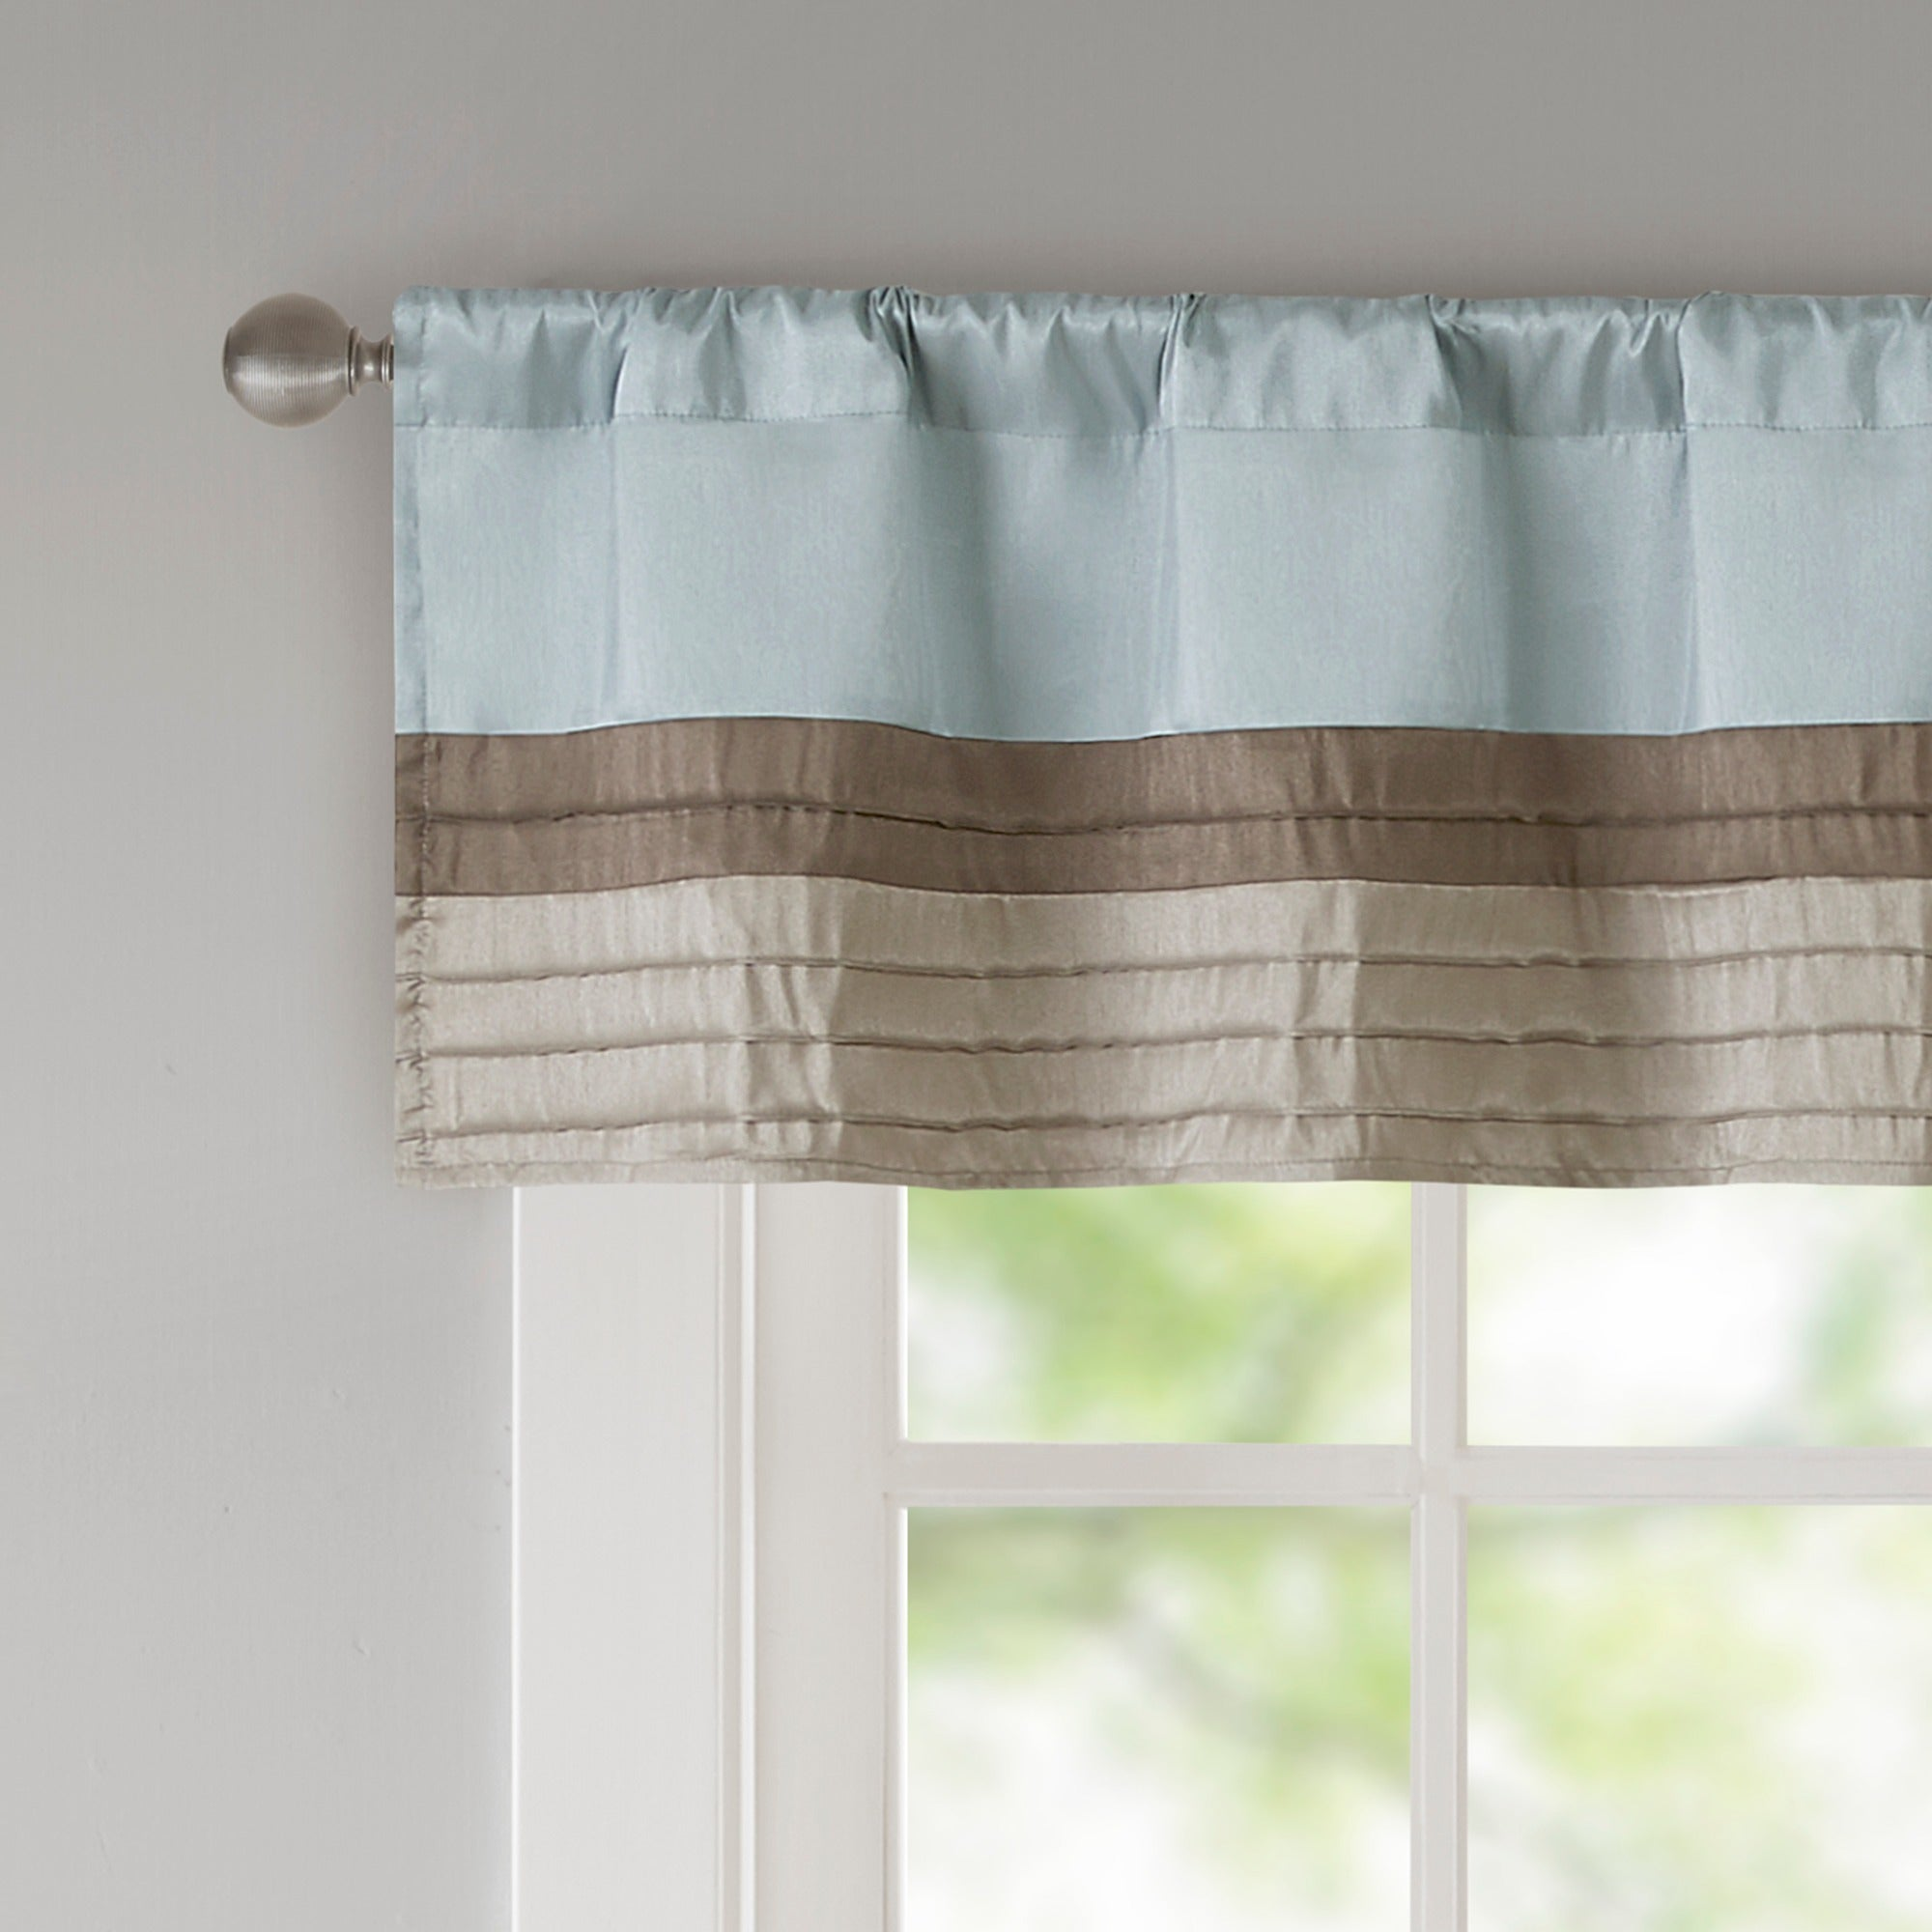 process fake valance make size styles one window windows our shades roman shopping zoom stop how with valances shade superb best for full easy the of beautiful bay lined to greensboro quatrefoil faux patte seamstress treatment nc amiable installers workroom thrilling mock